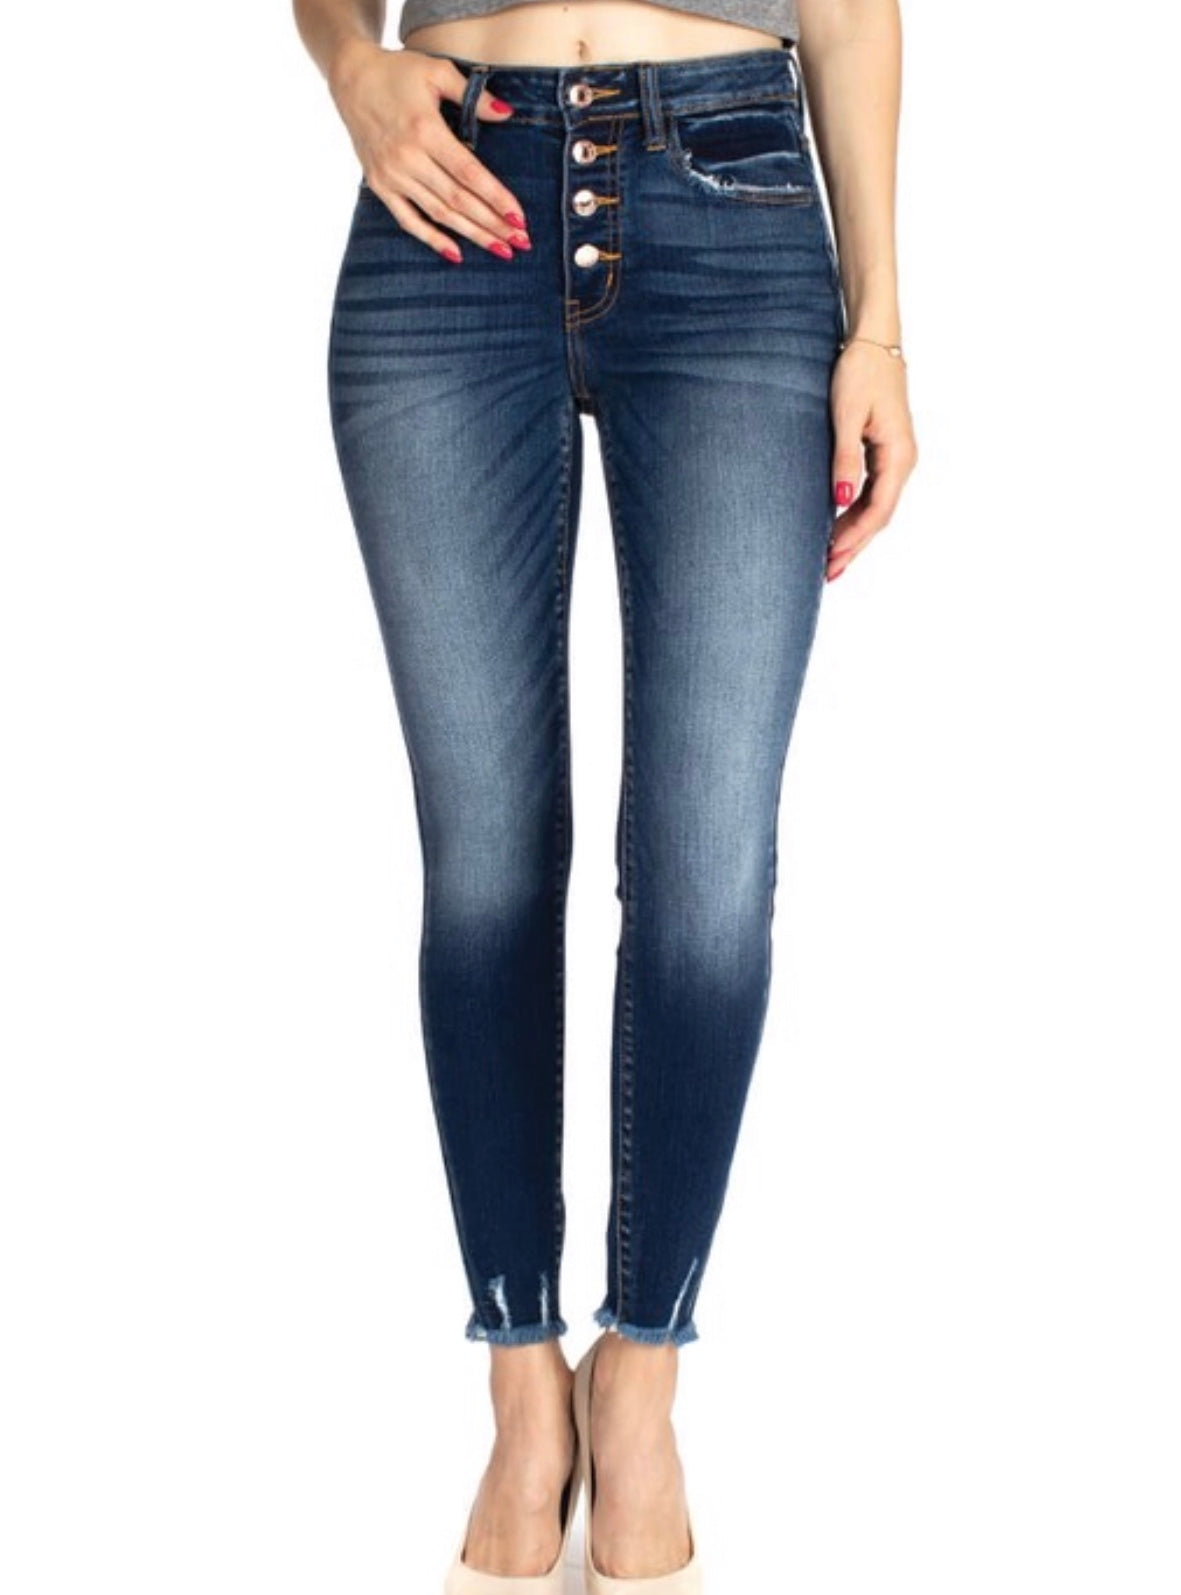 The San Diego Distressed Jean